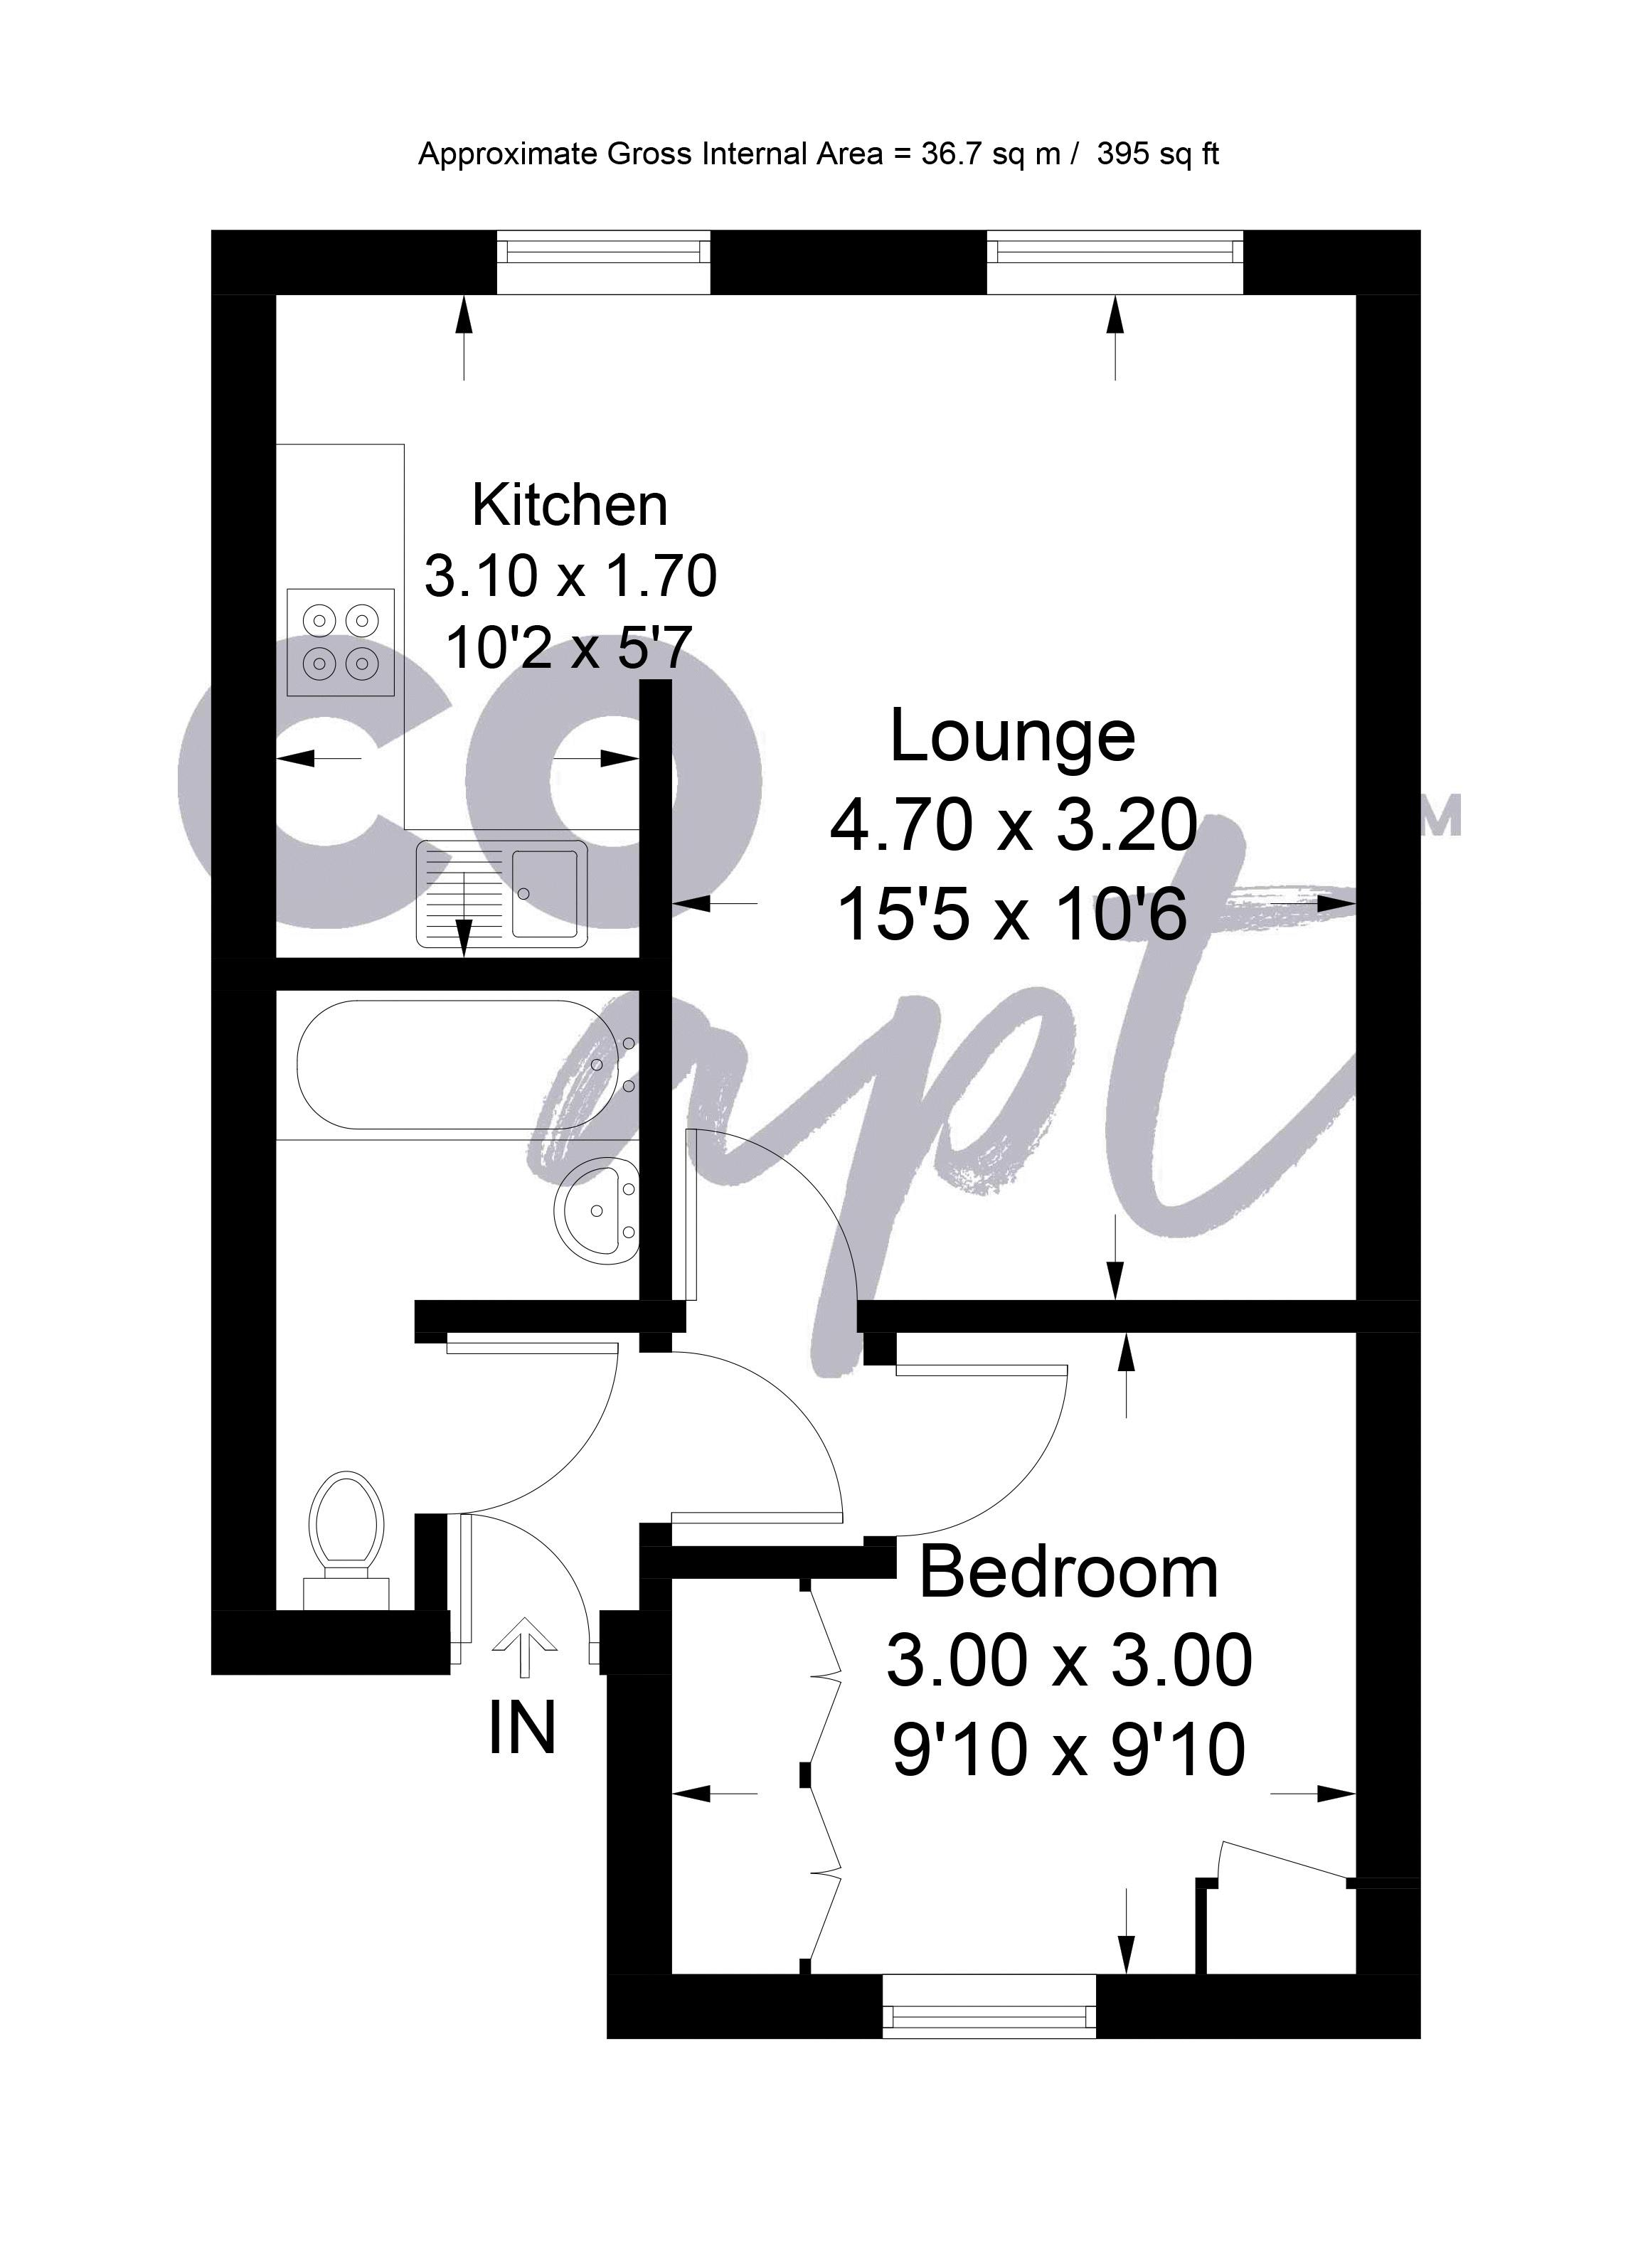 Floor plans for Montpelier Road, Brighton property for sale in Hove, Brighton by Coapt